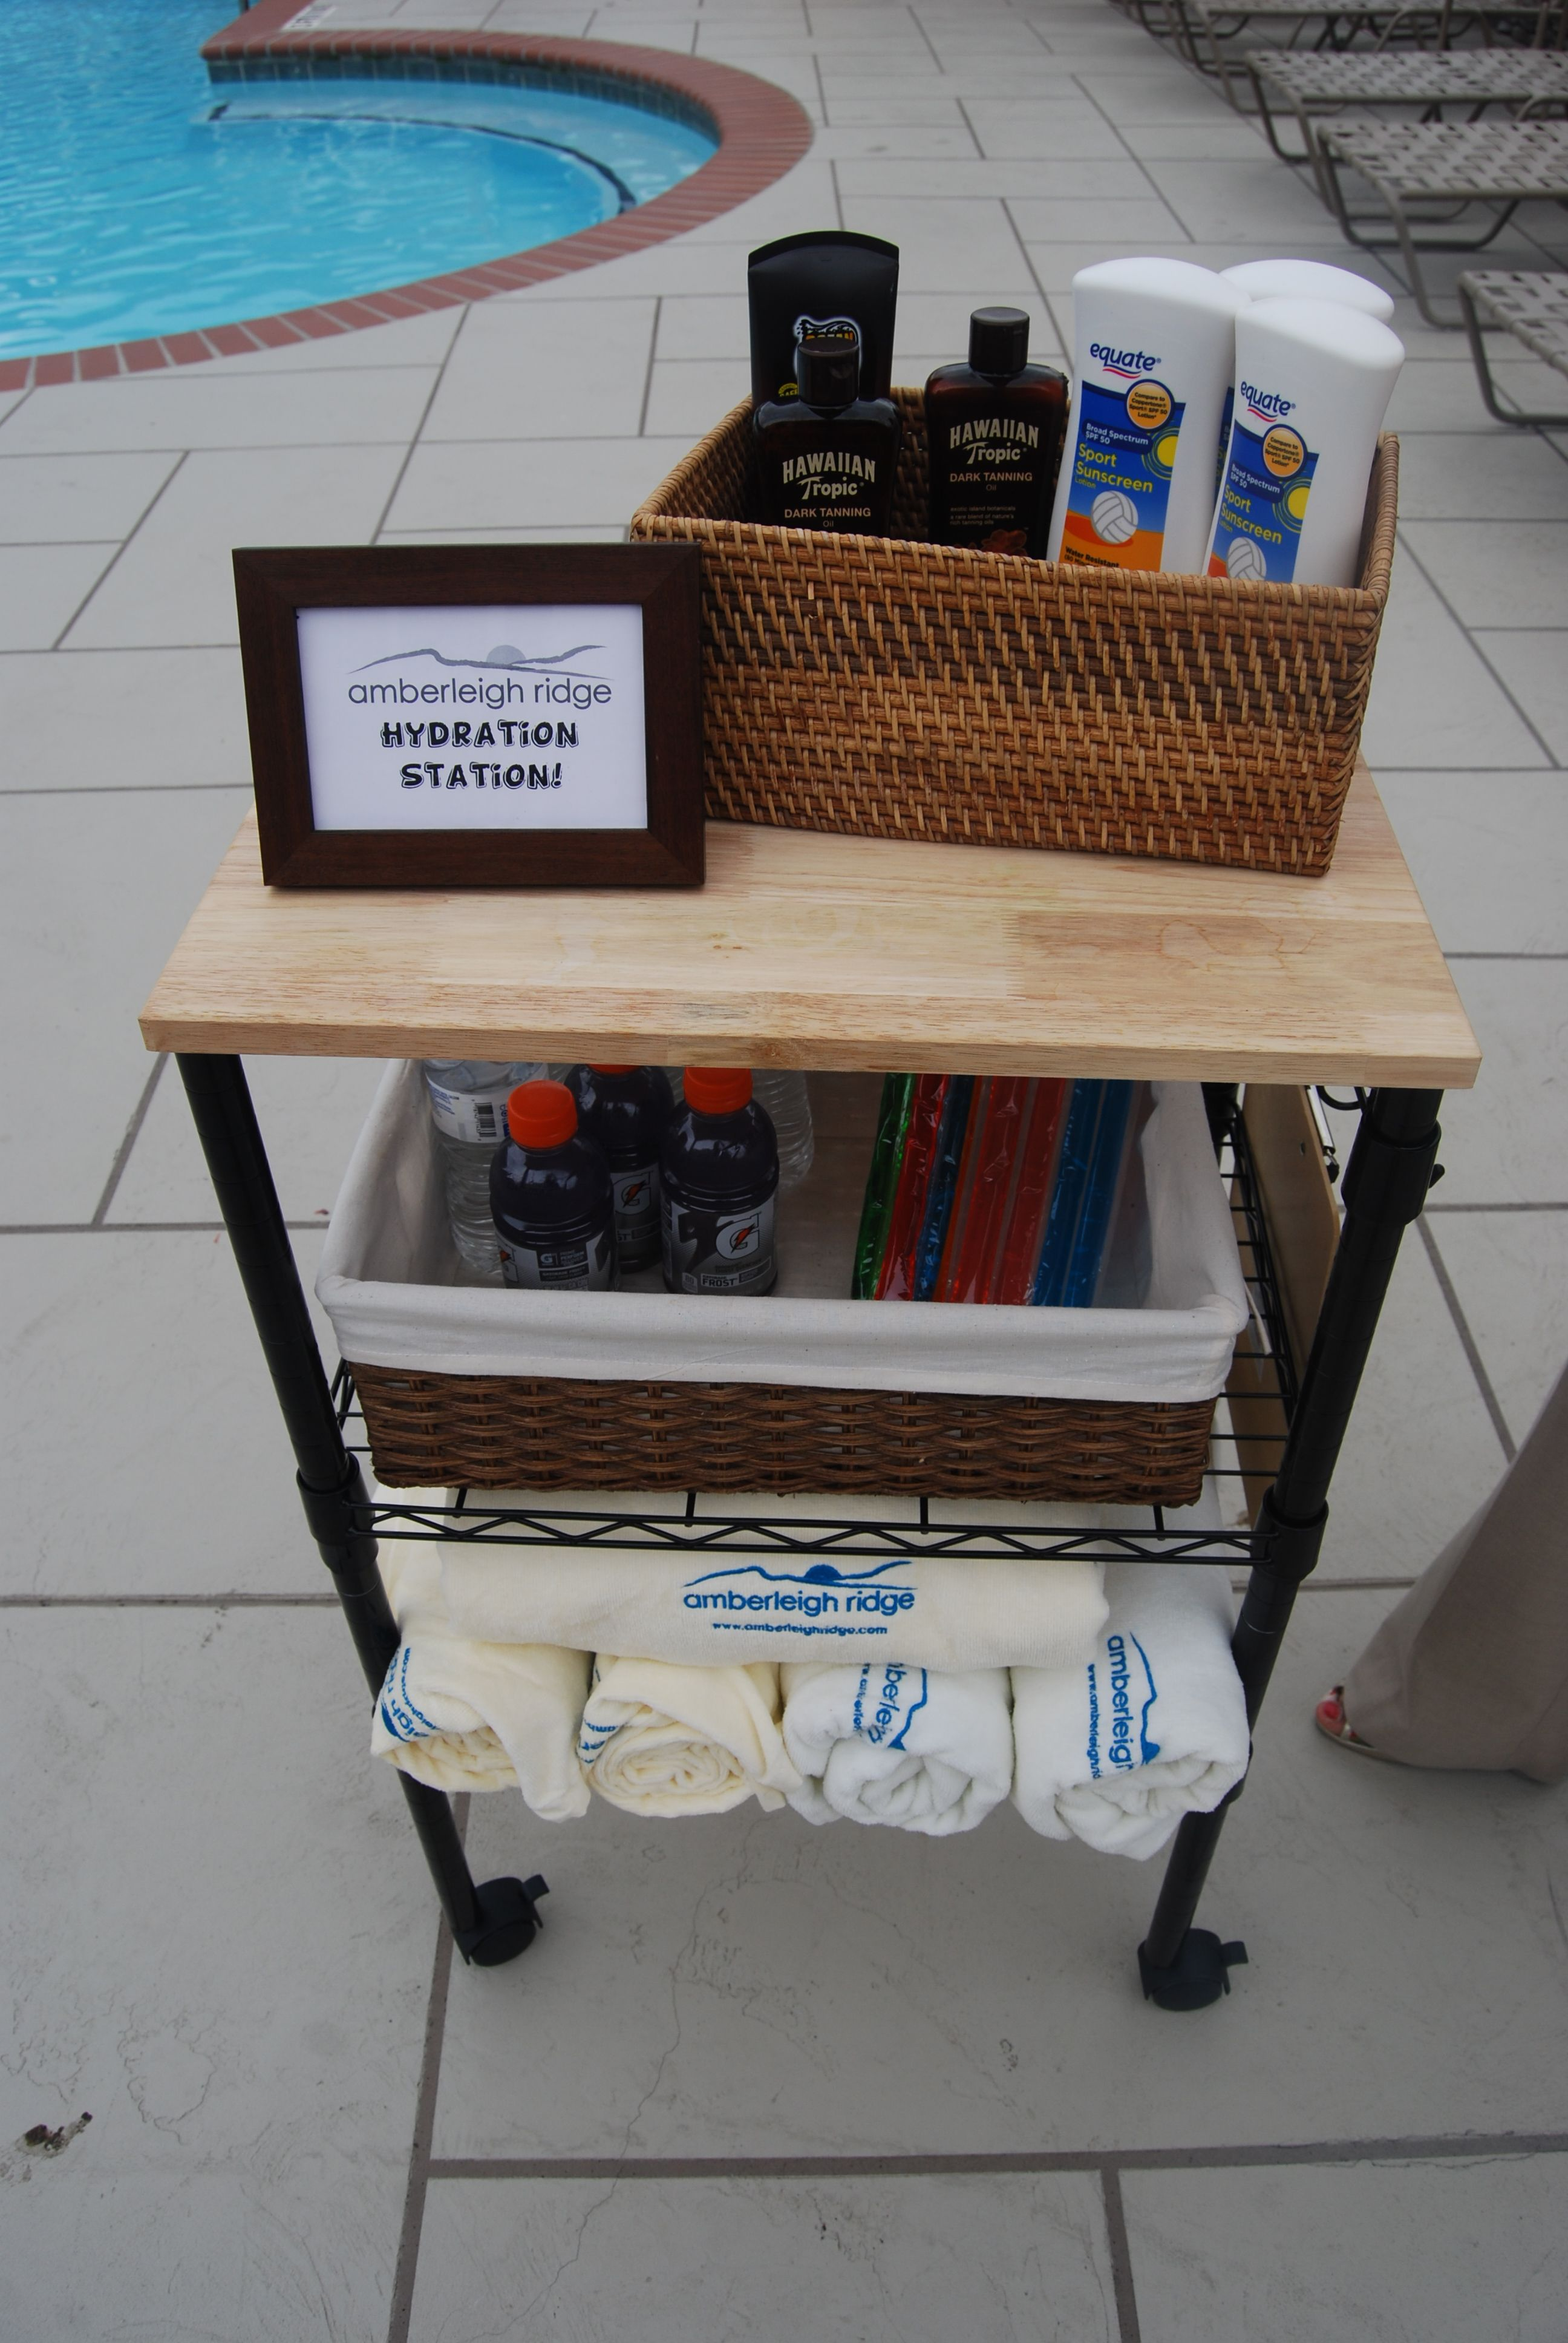 Apartment Marketing Poolside Service And Hydration Station